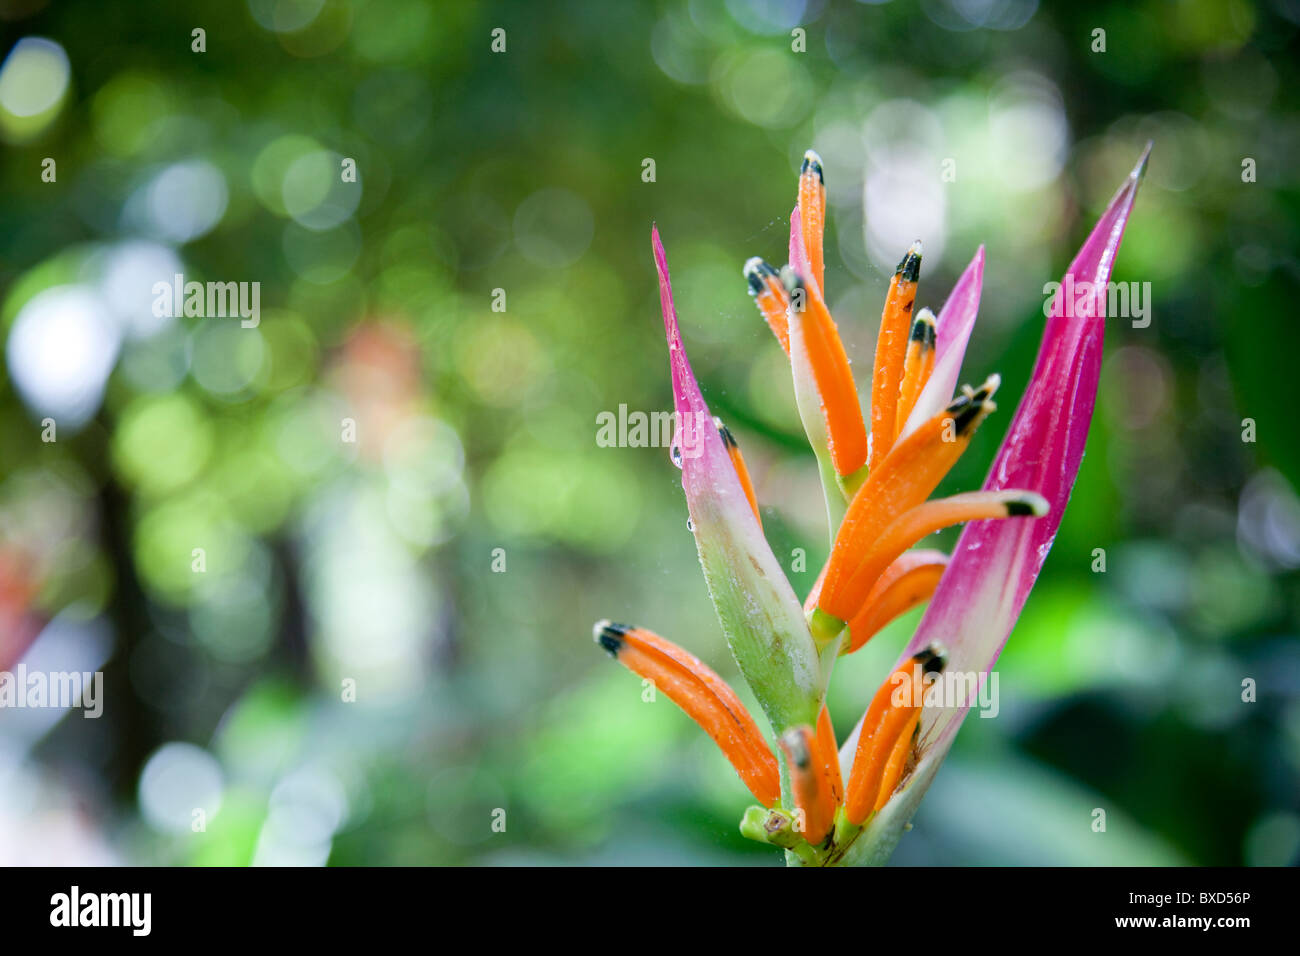 A heleconia plant at Turtle Bay. - Stock Image